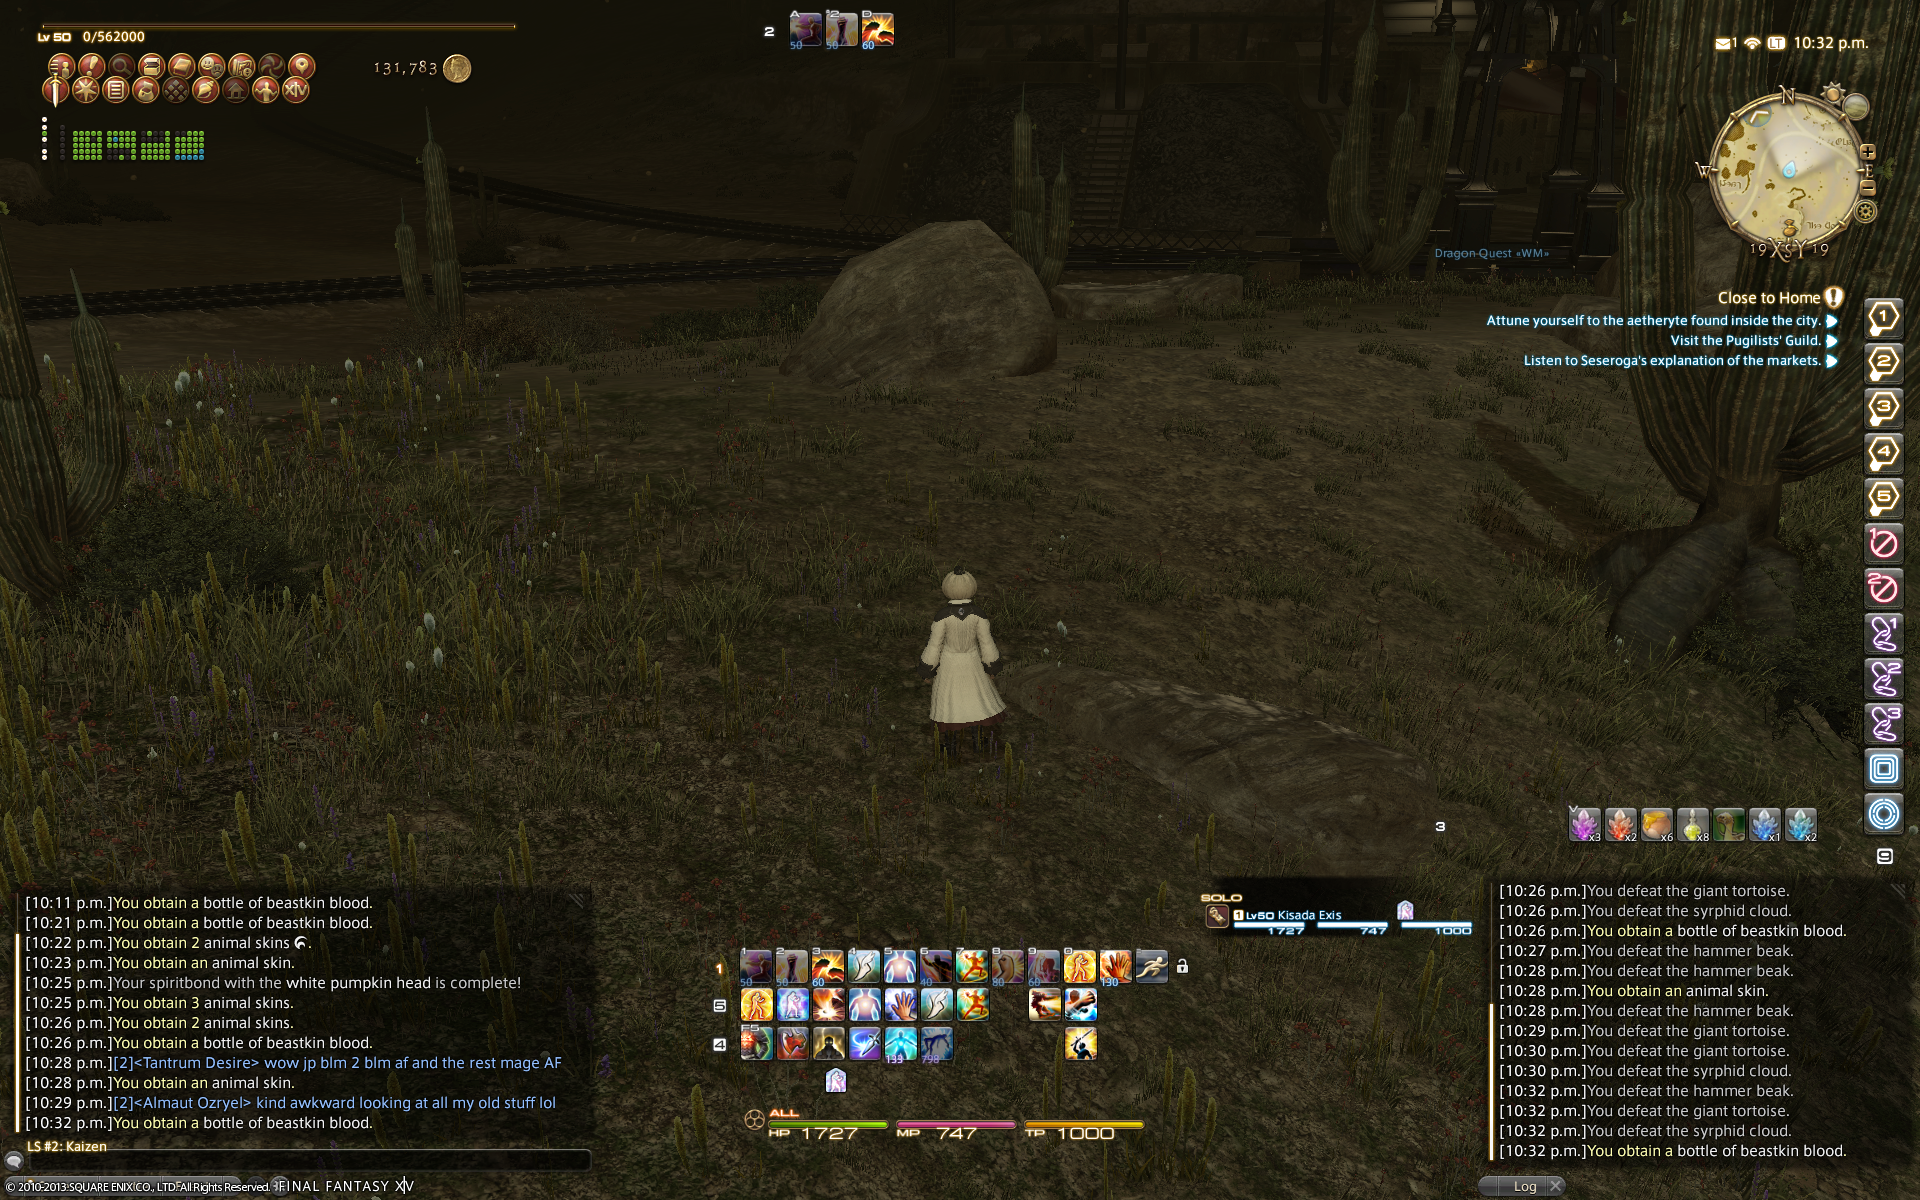 kisada ffxiv make petbar command toggle your visibility pictures remember anyone post know